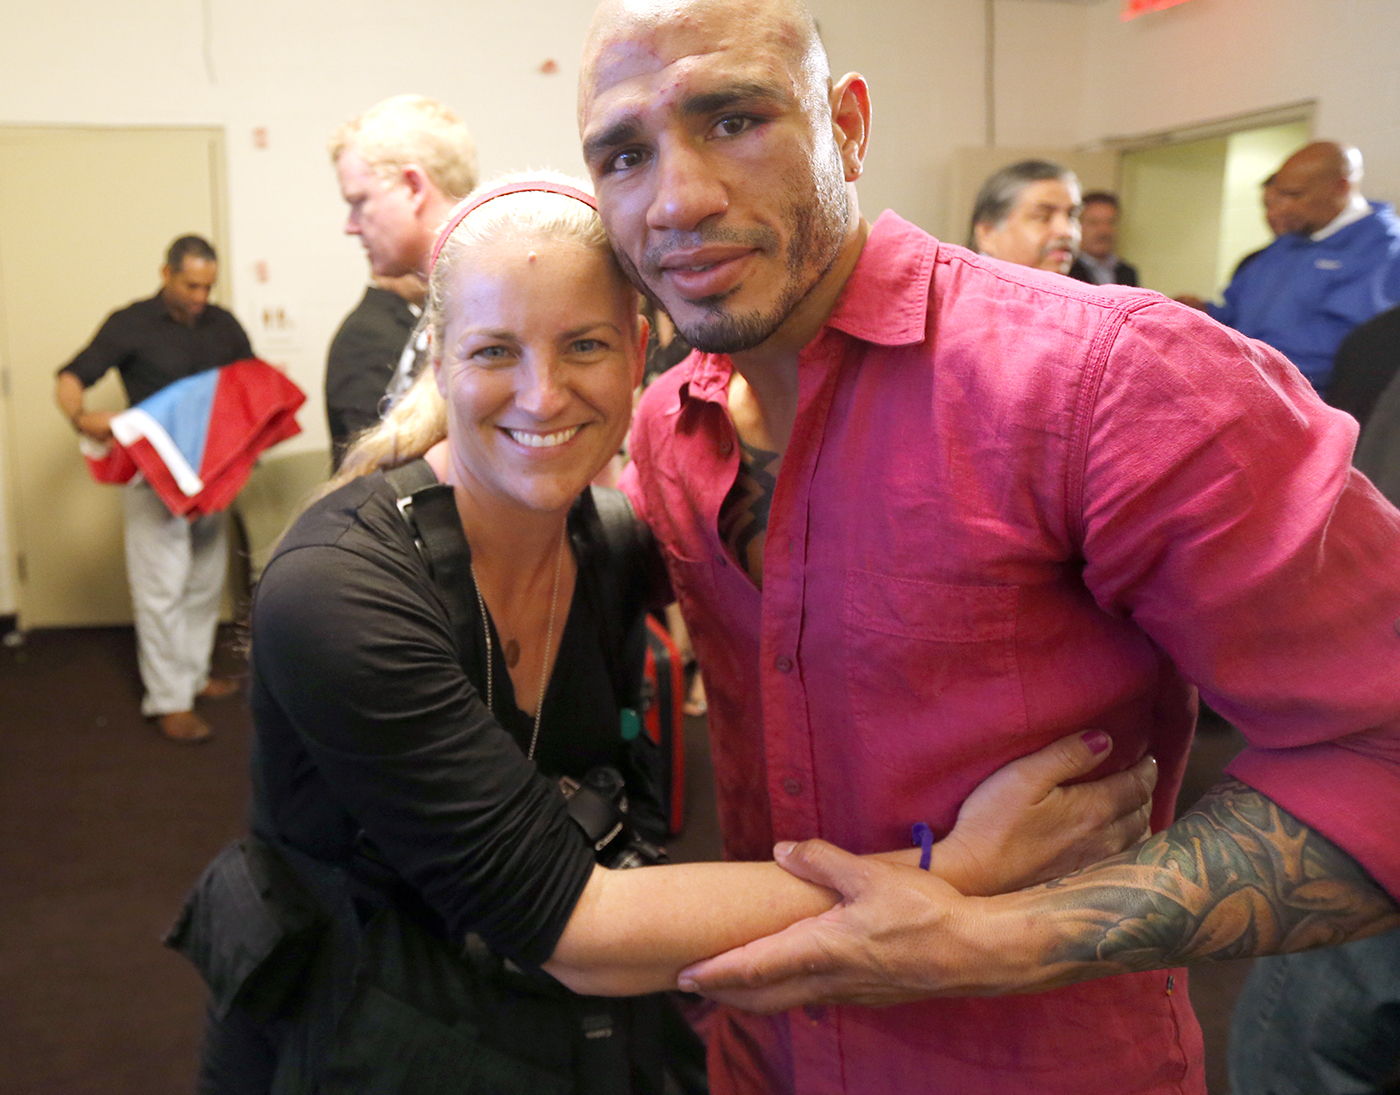 Happy to give the Champ Miguel Cotto a hug after his hard fought TKO win over Sergio Martinez at Madison Square Garden in New York City June 7, 2014